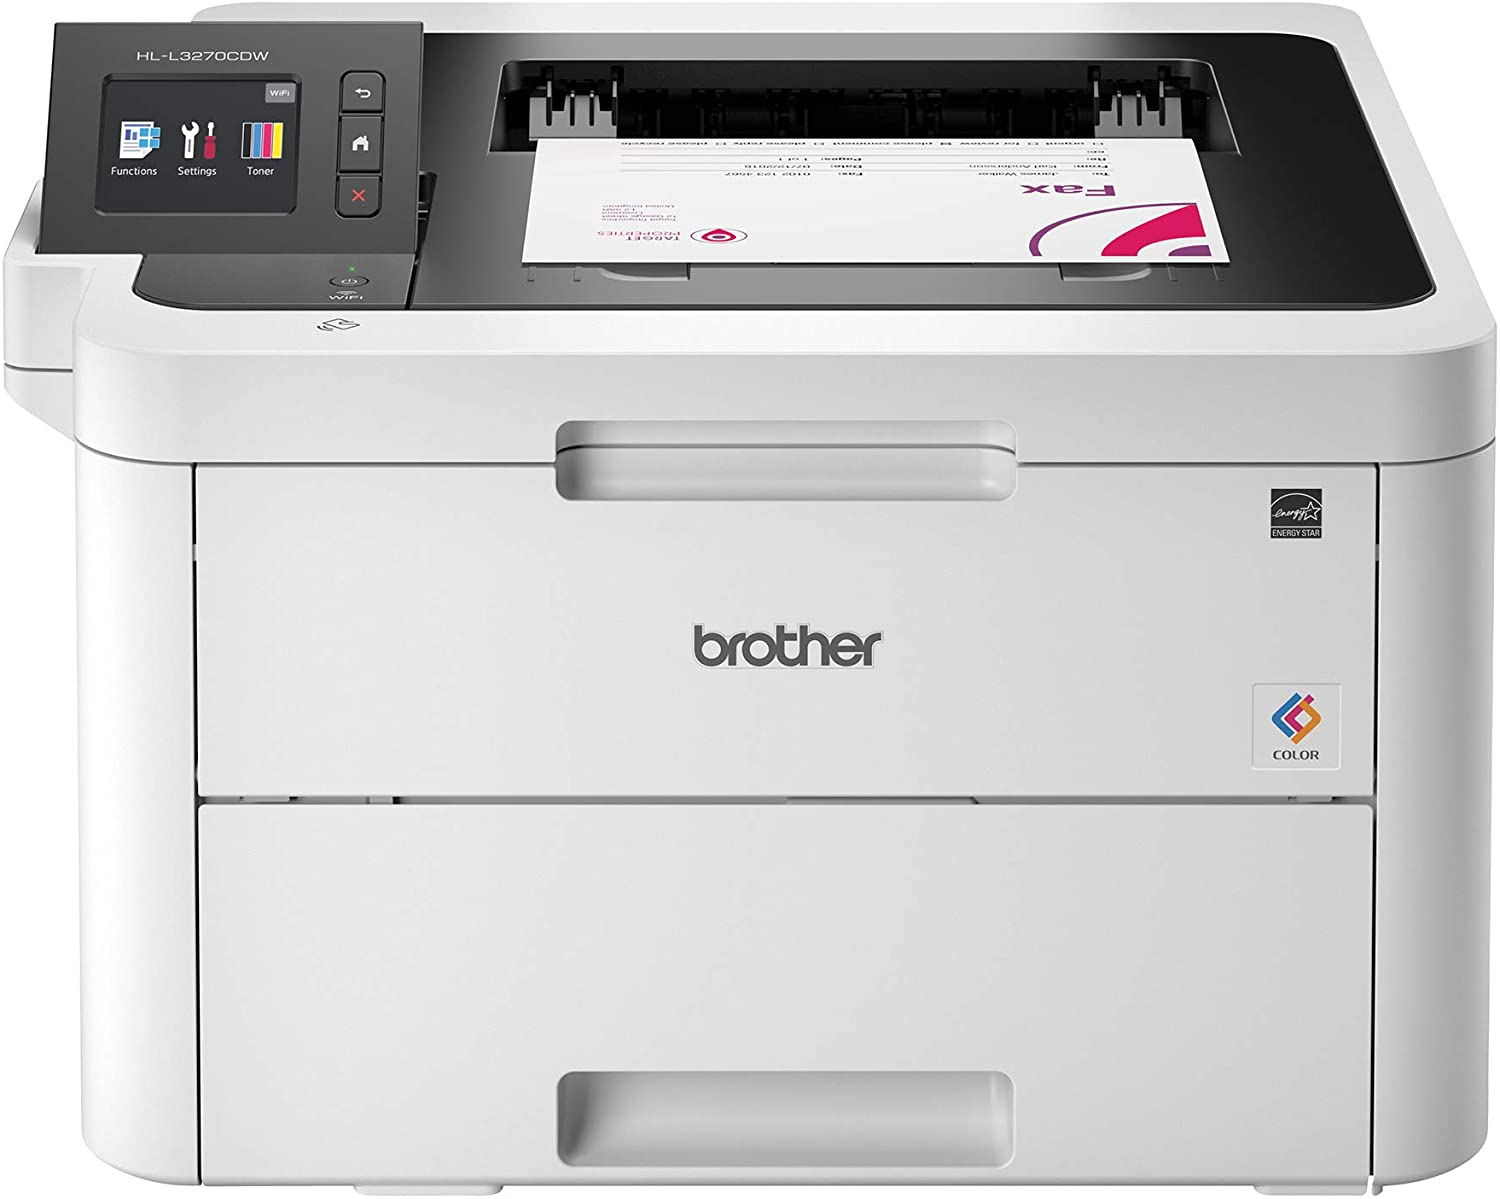 Save $130 on Brother HL-L3270CDW Wireless Digital Color Printer